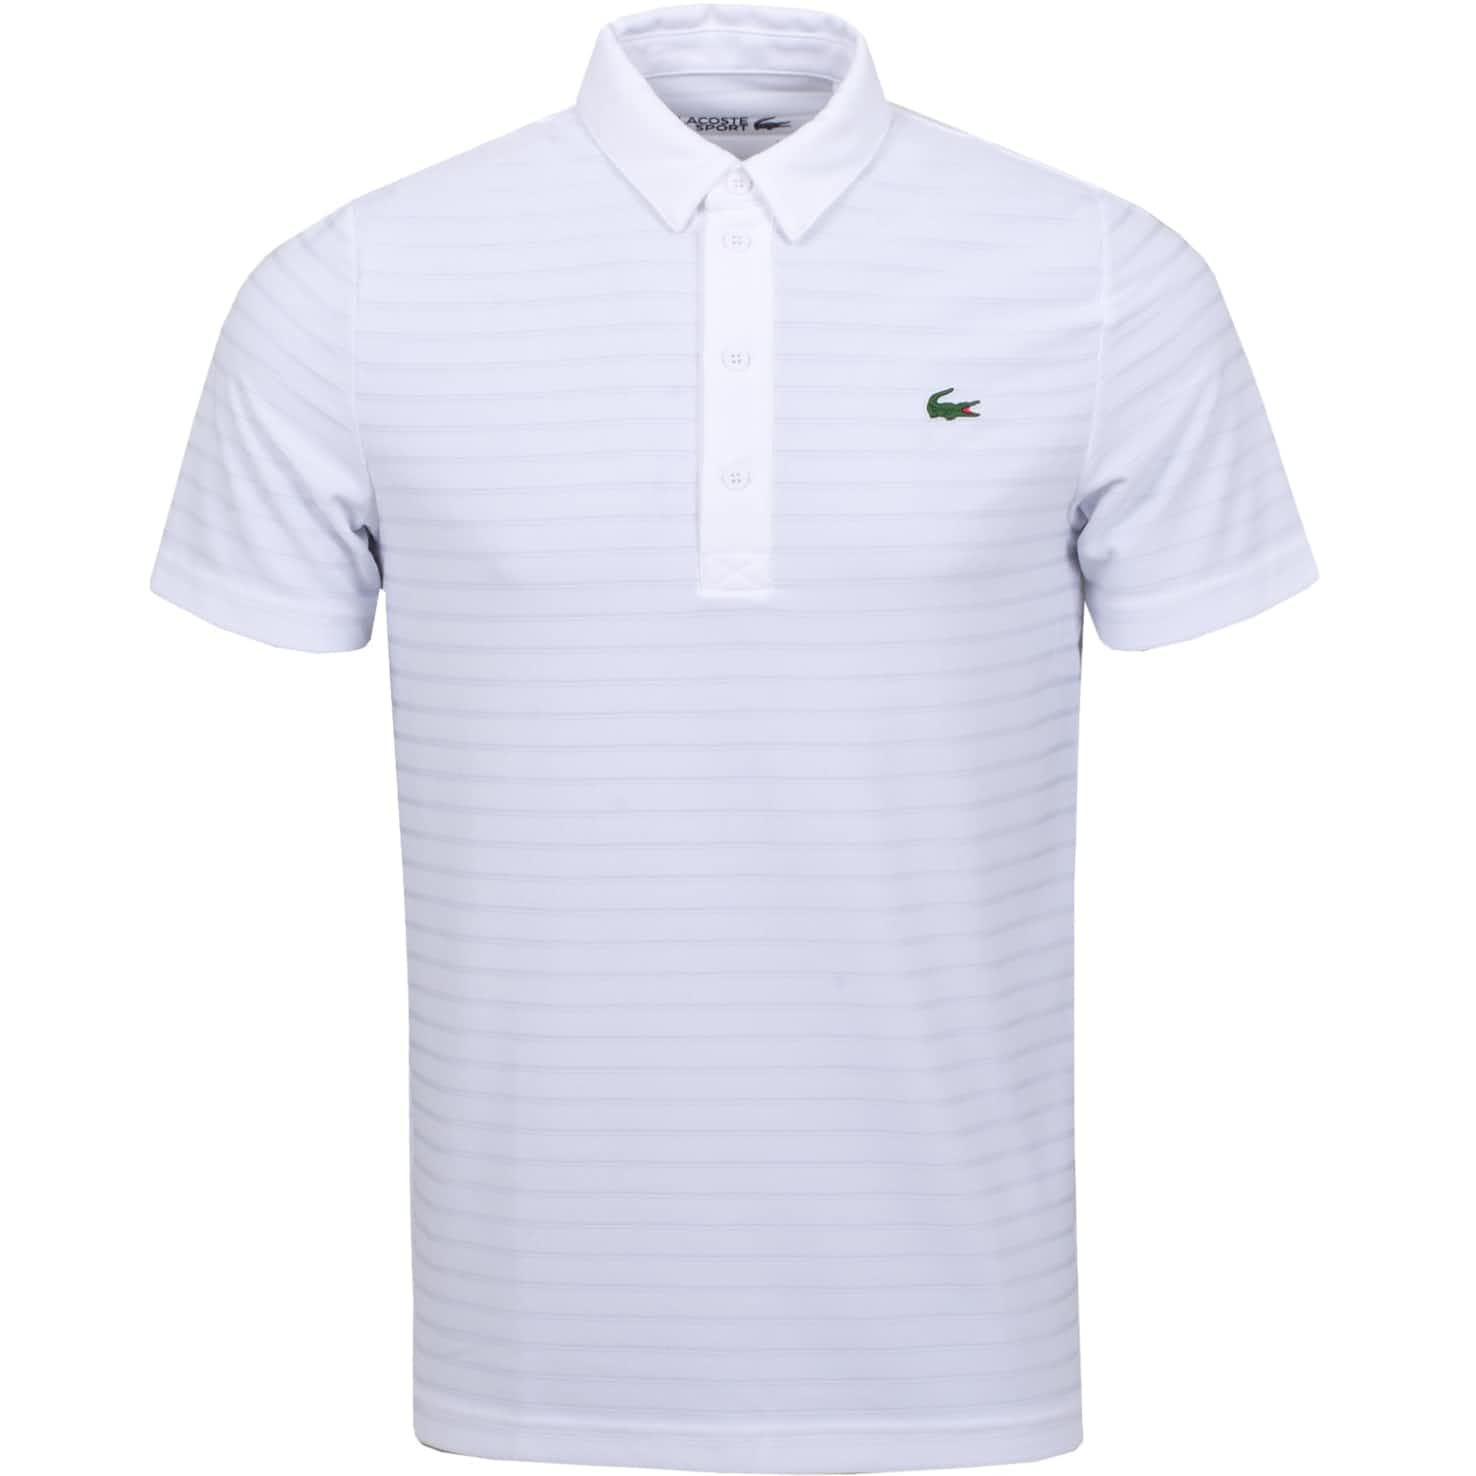 Technical Jacquard Polo White - SS20